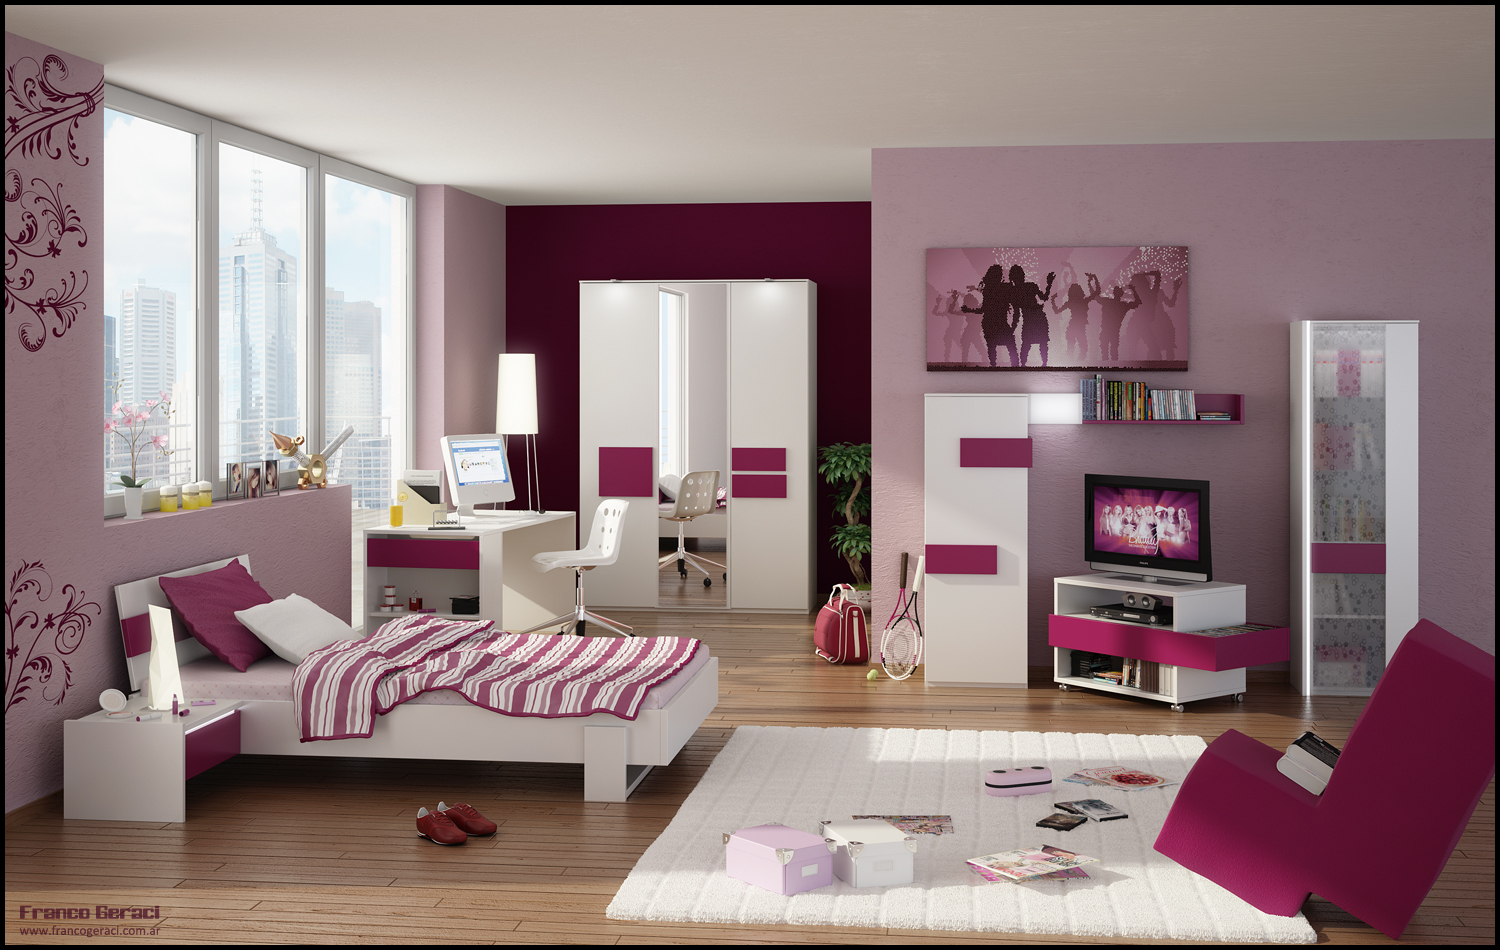 Teenage room designs How to decorate a teenage room